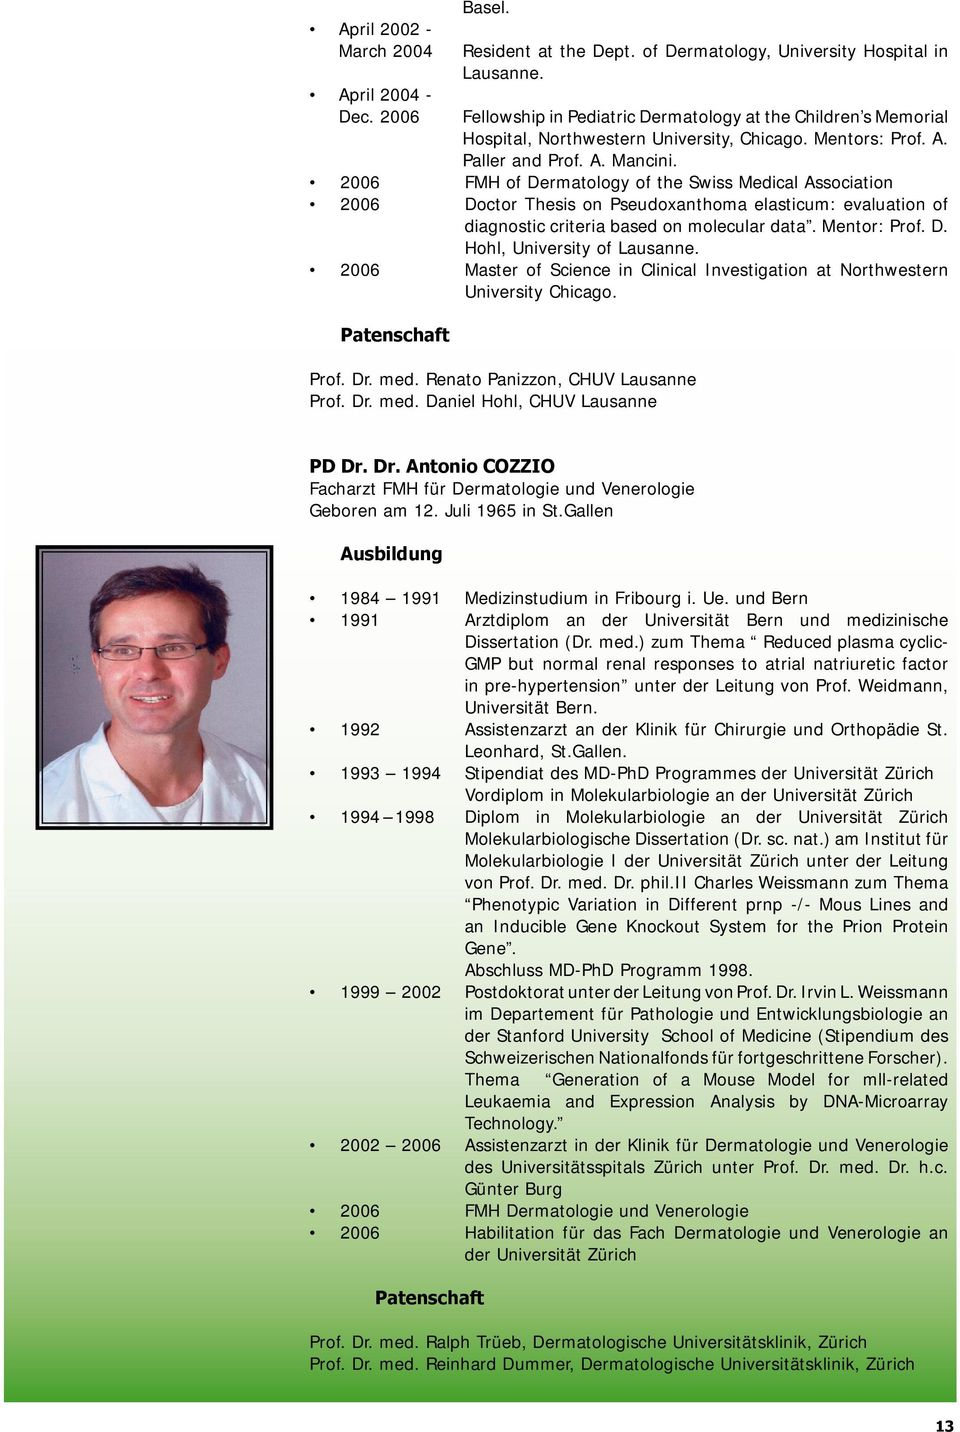 2006 FMH of Dermatology of the Swiss Medical Association 2006 Doctor Thesis on Pseudoxanthoma elasticum: evaluation of diagnostic criteria based on molecular data. Mentor: Prof. D. Hohl, University of Lausanne.